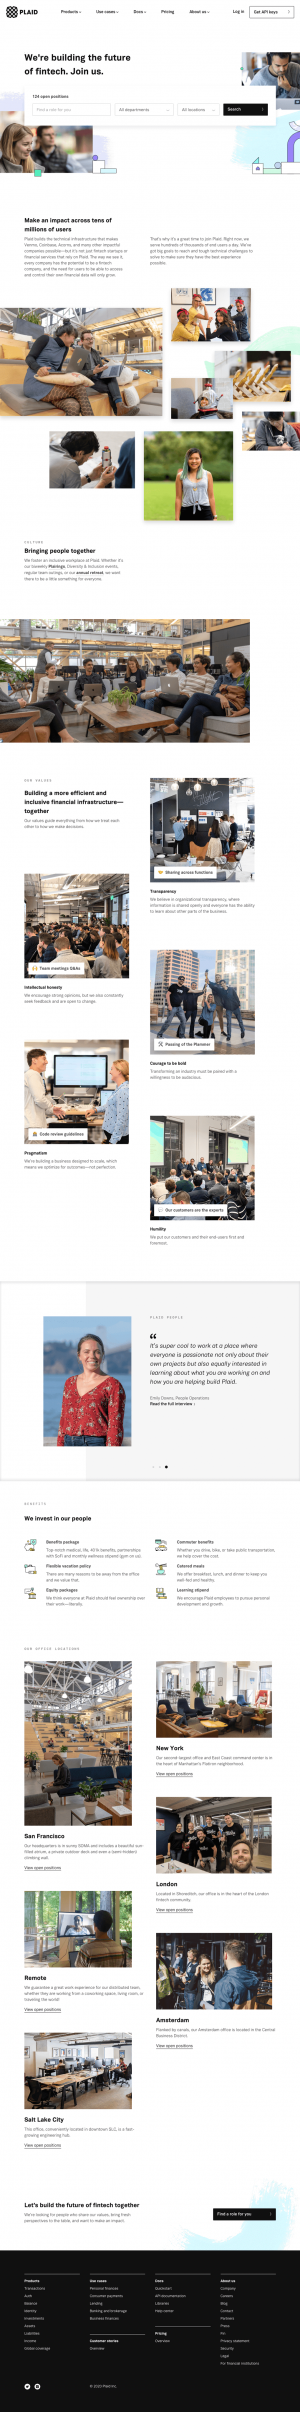 Plaid – Career page